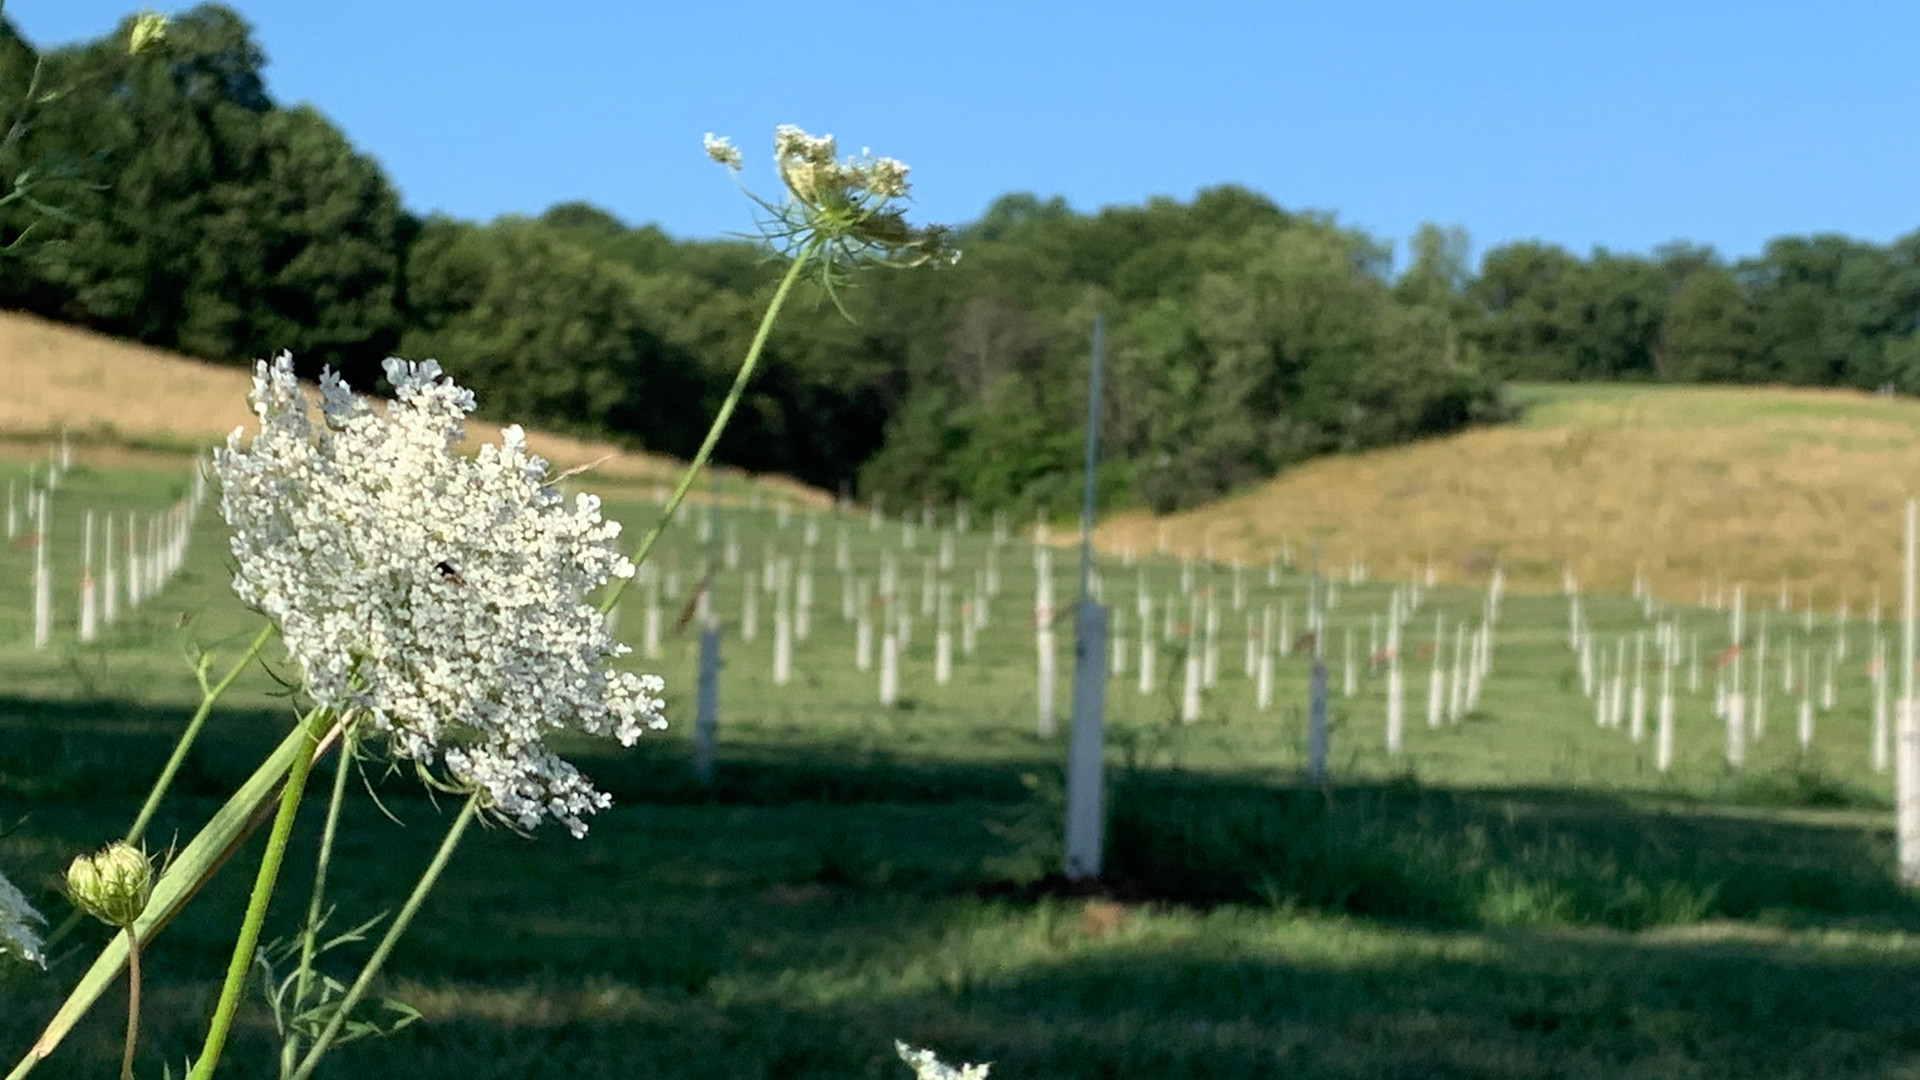 Chestnut trees and Queen Anne's Lace